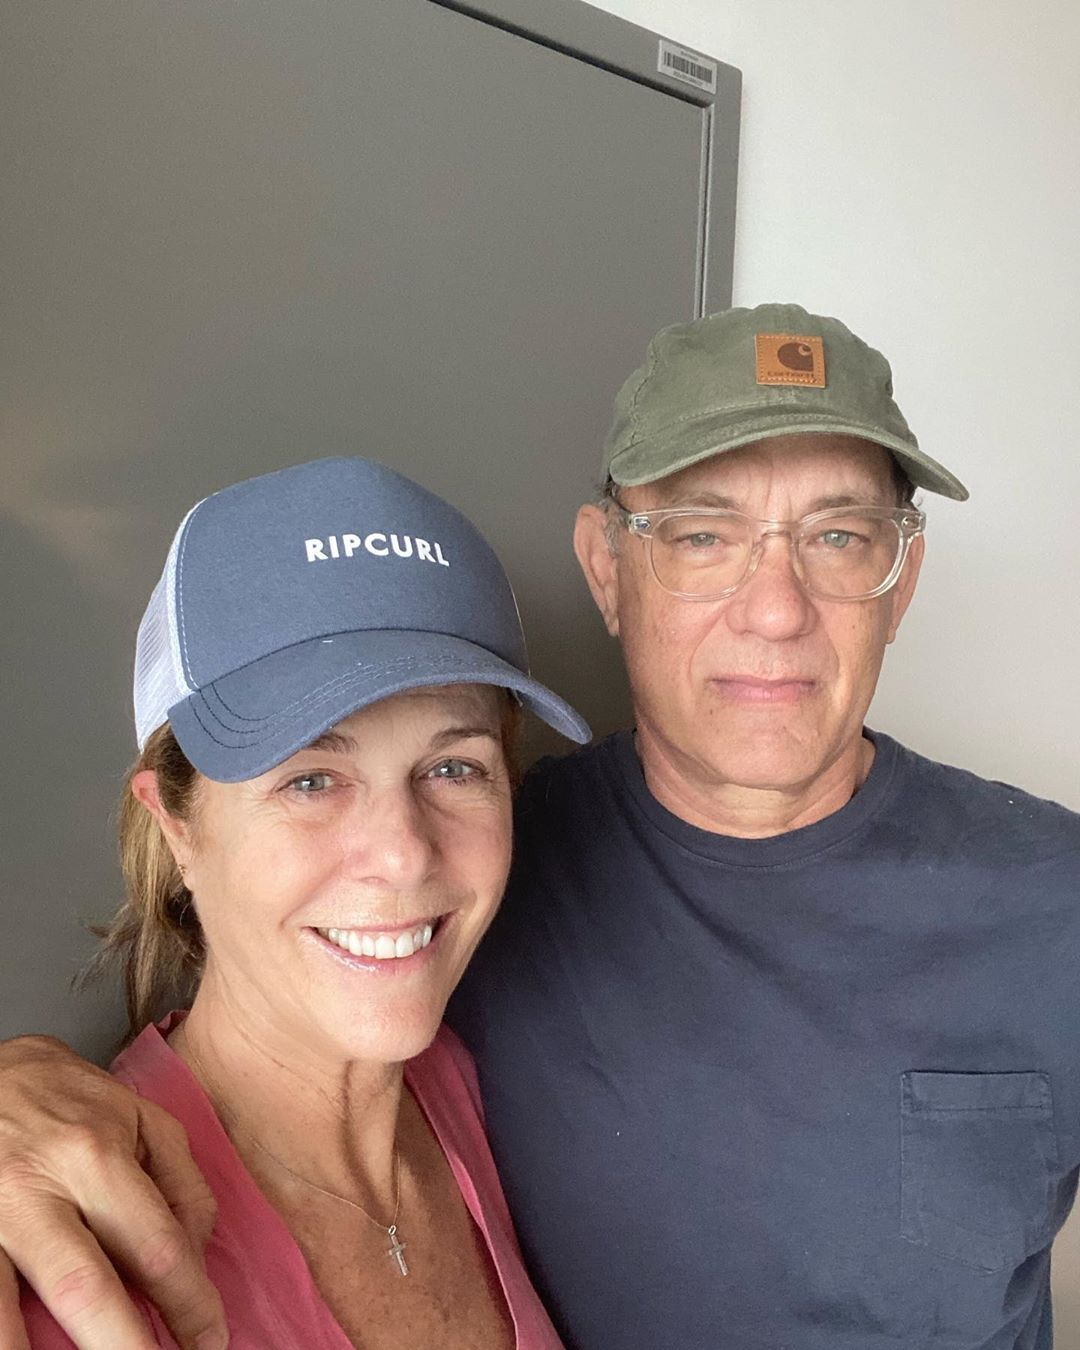 Hello folks. @ritawilson and I want to thank everyone here Down Under who are taking such good care of us. We have Covid-19 and are in isolation so we do not spread it to anyone else. There are those for whom it could lead to a very serious illness. We are taking it one-day-at-a-time. There are things we can all do to get through this by following the advice of experts and taking care of ourselves and each other, no? Remember, despite all the current events, there is no crying in baseball. Hanx